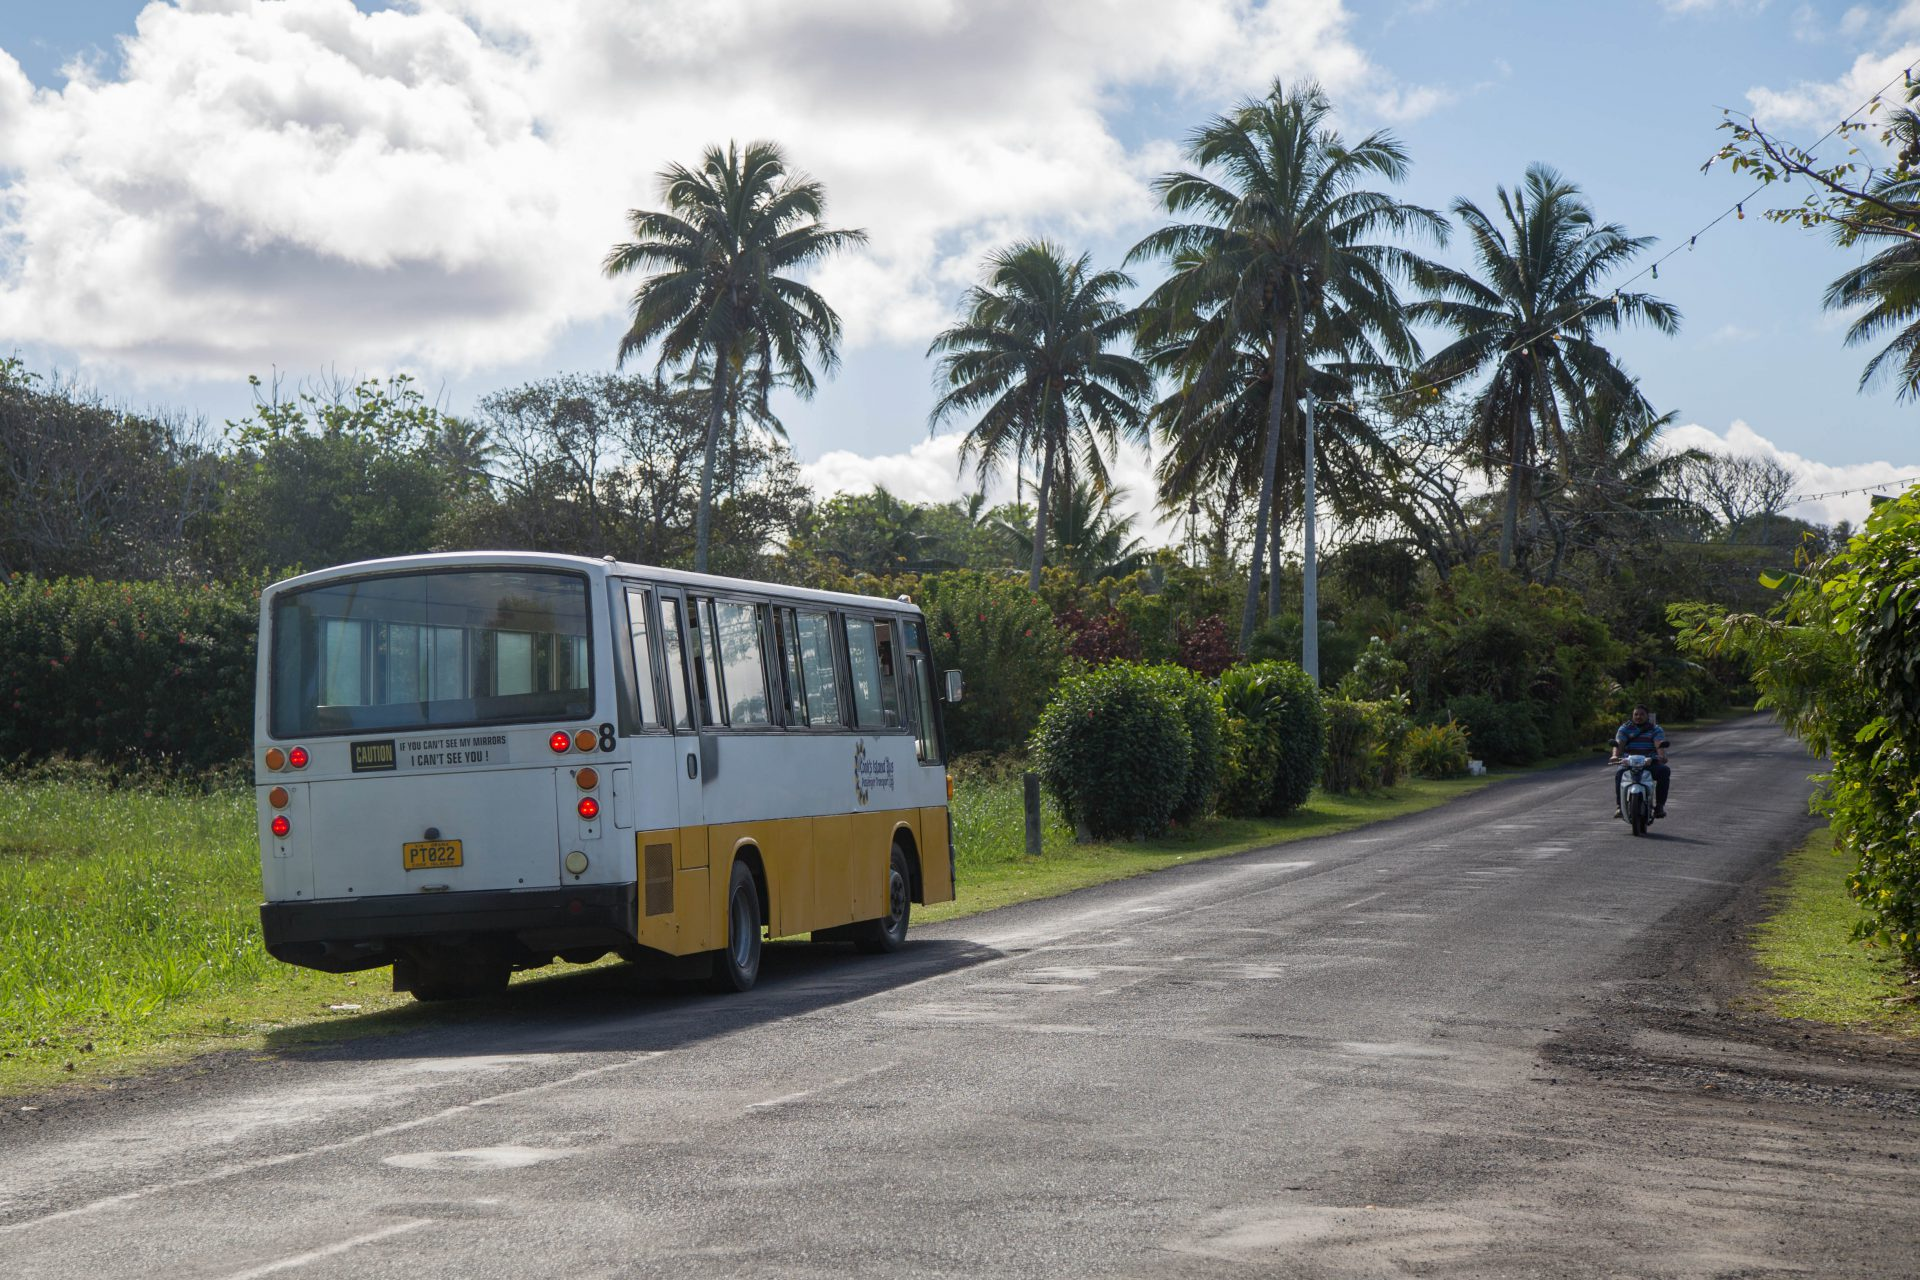 There are two bus routes around Rarotonga: one goes clockwise, the other counter-clockwise